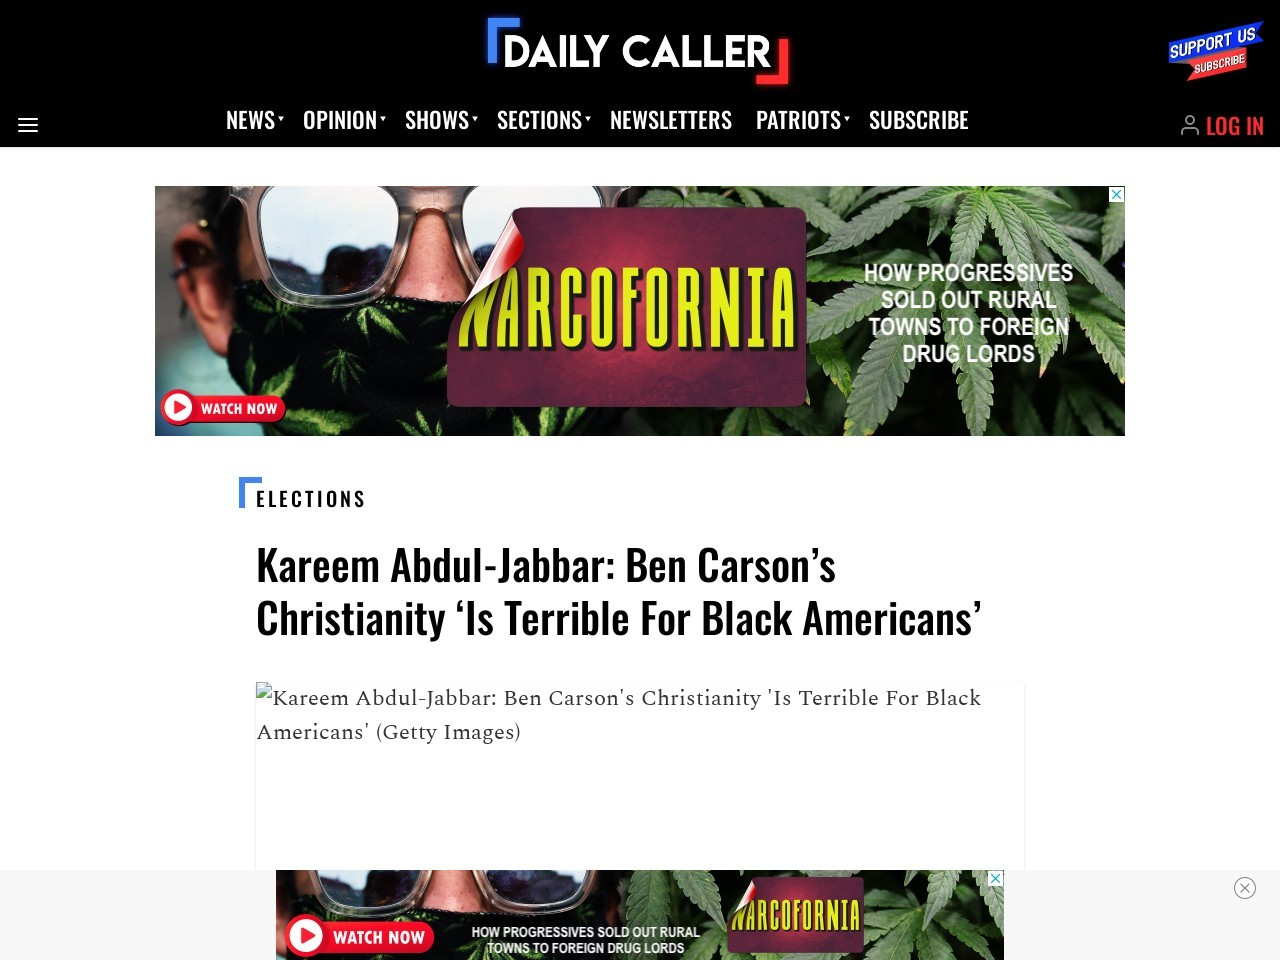 Ben Carson's Christianity 'Is Terrible For Black Americans'